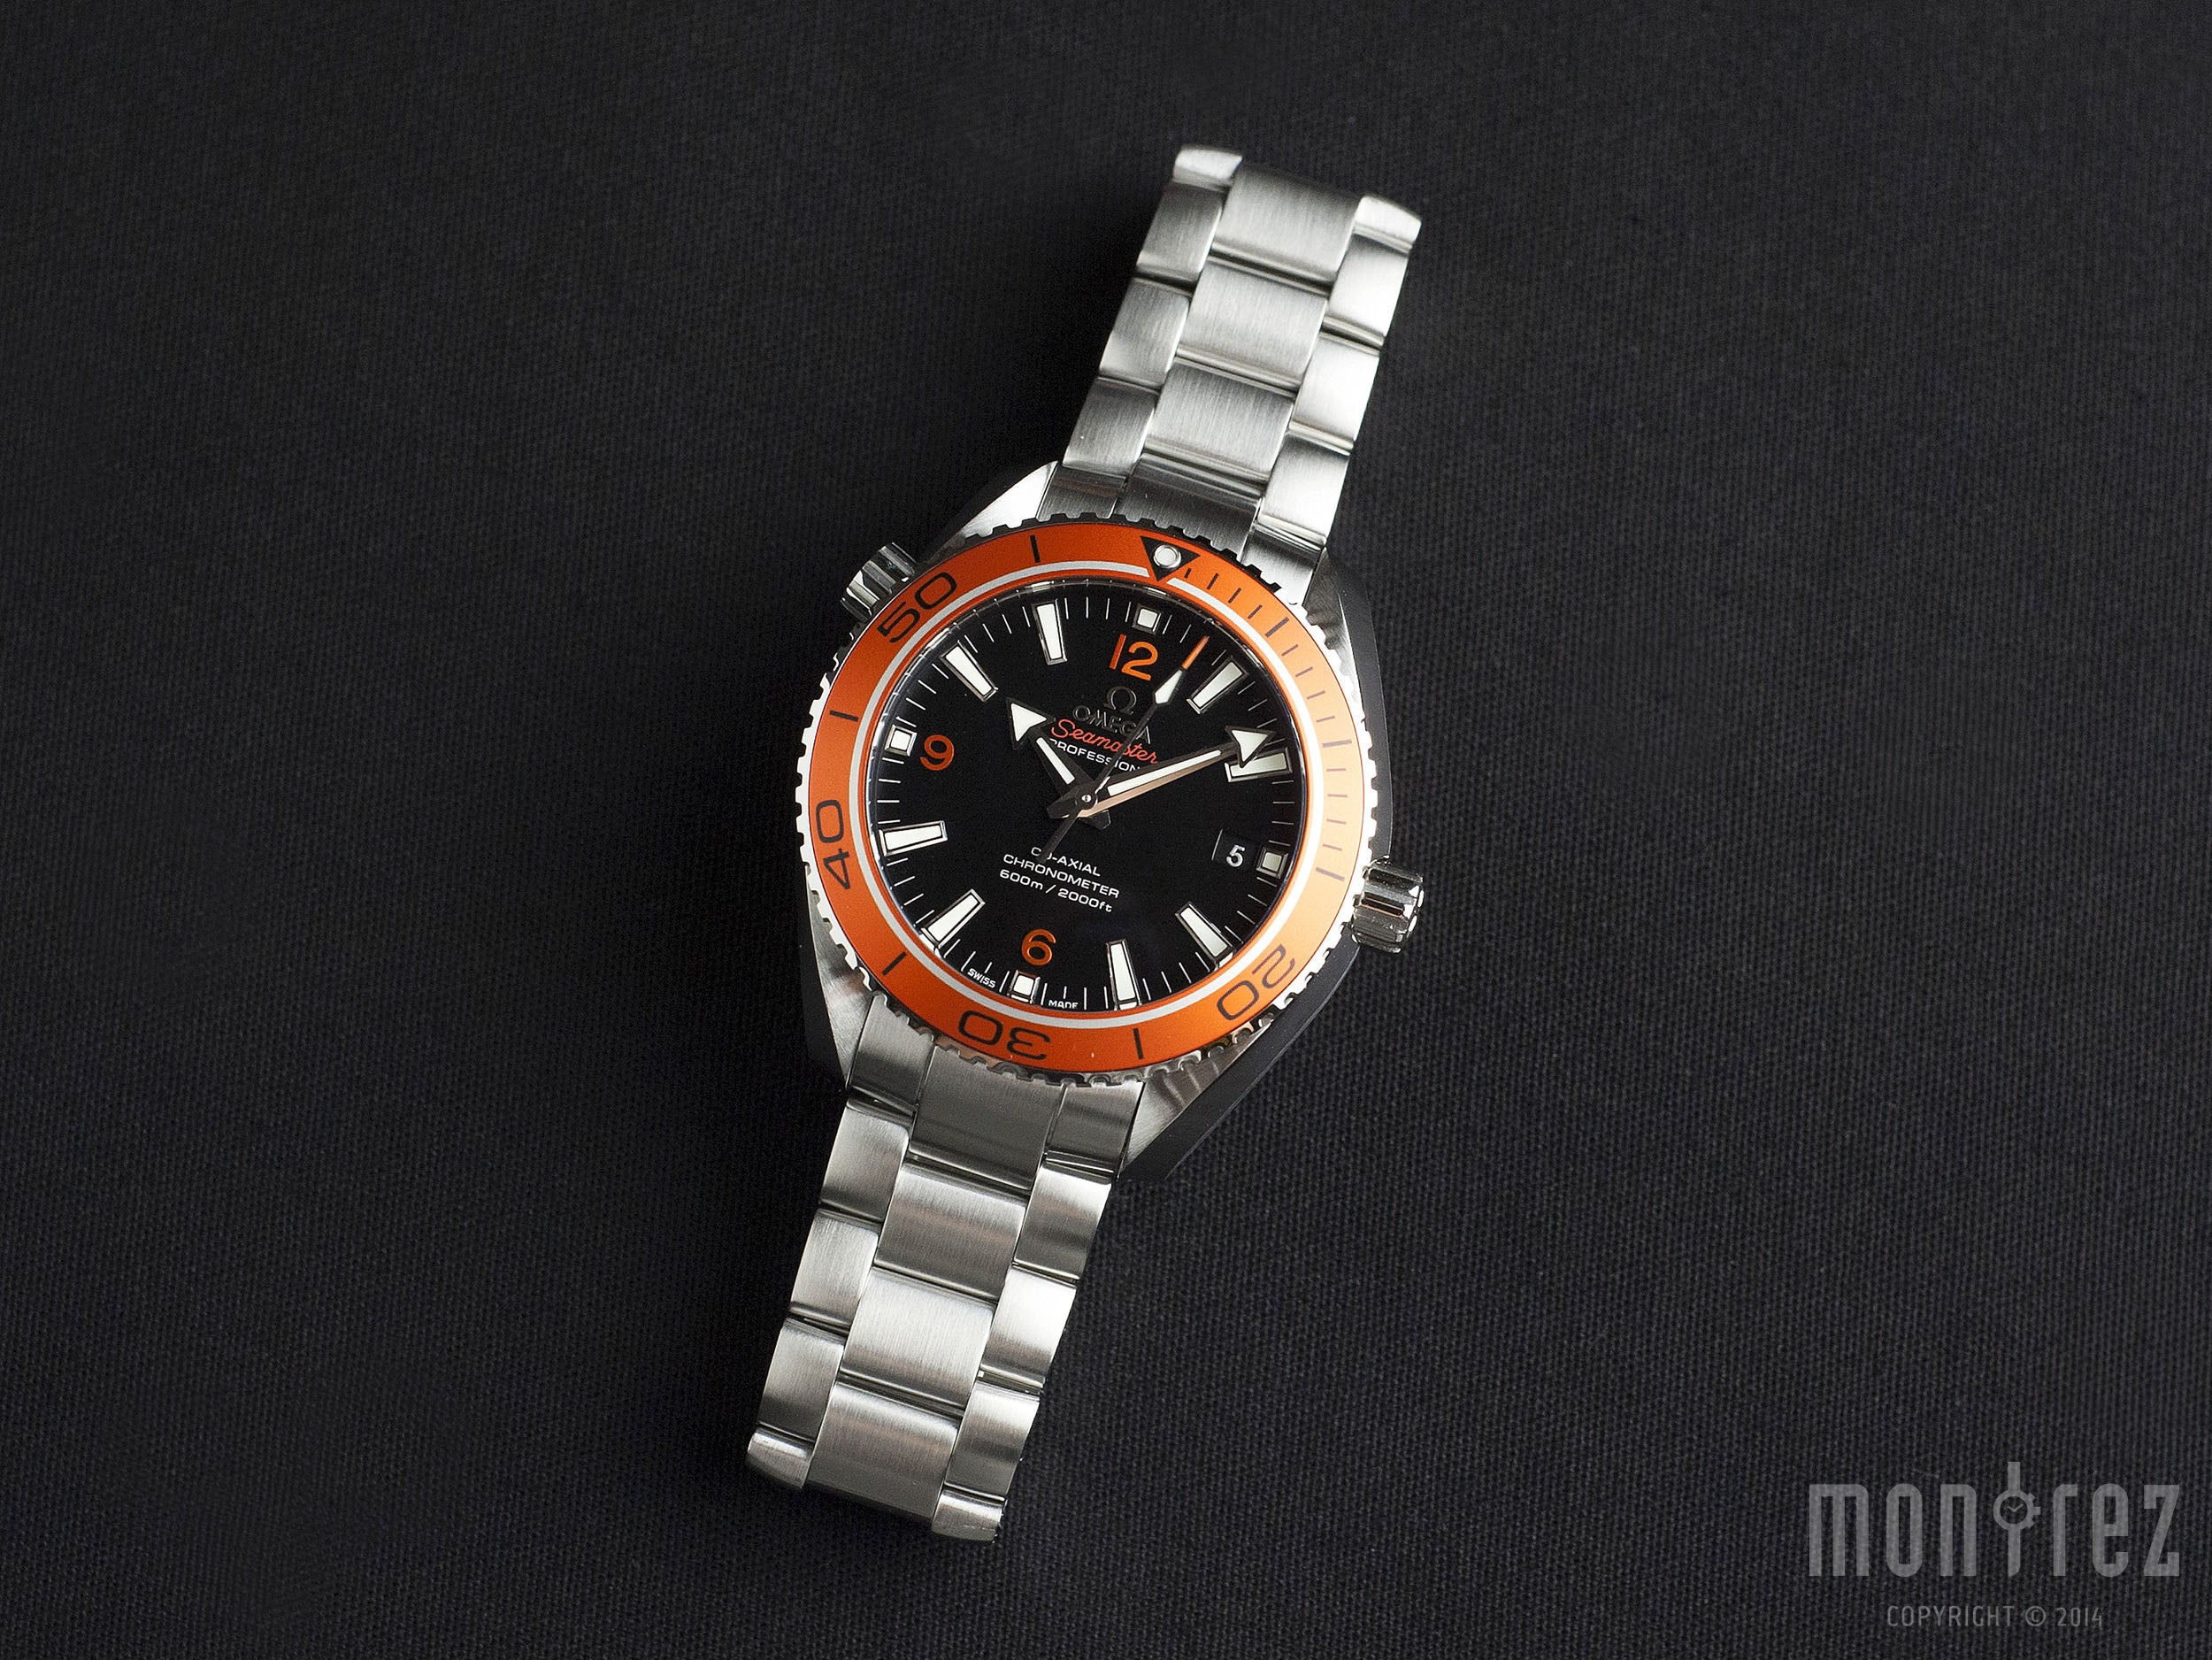 Omega Seamaster Planet Ocean 600m Co-Axial 42mm 232.30.42.21.01.002 (Out of Production)